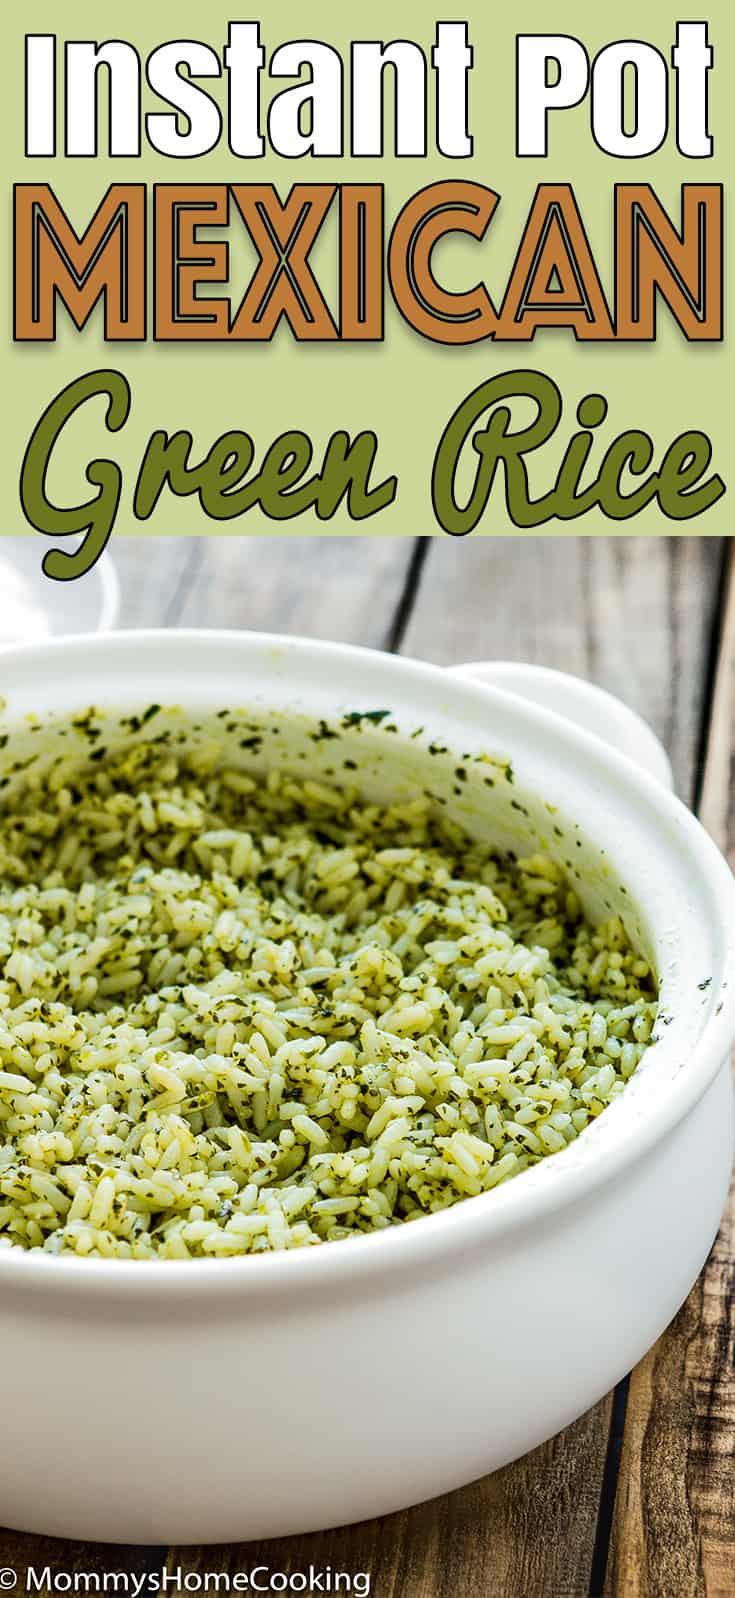 Easy Instant Pot Mexican Green Rice - #InstantPot #Rice #Recipe #SideDish #GreenRice #MexicanRice